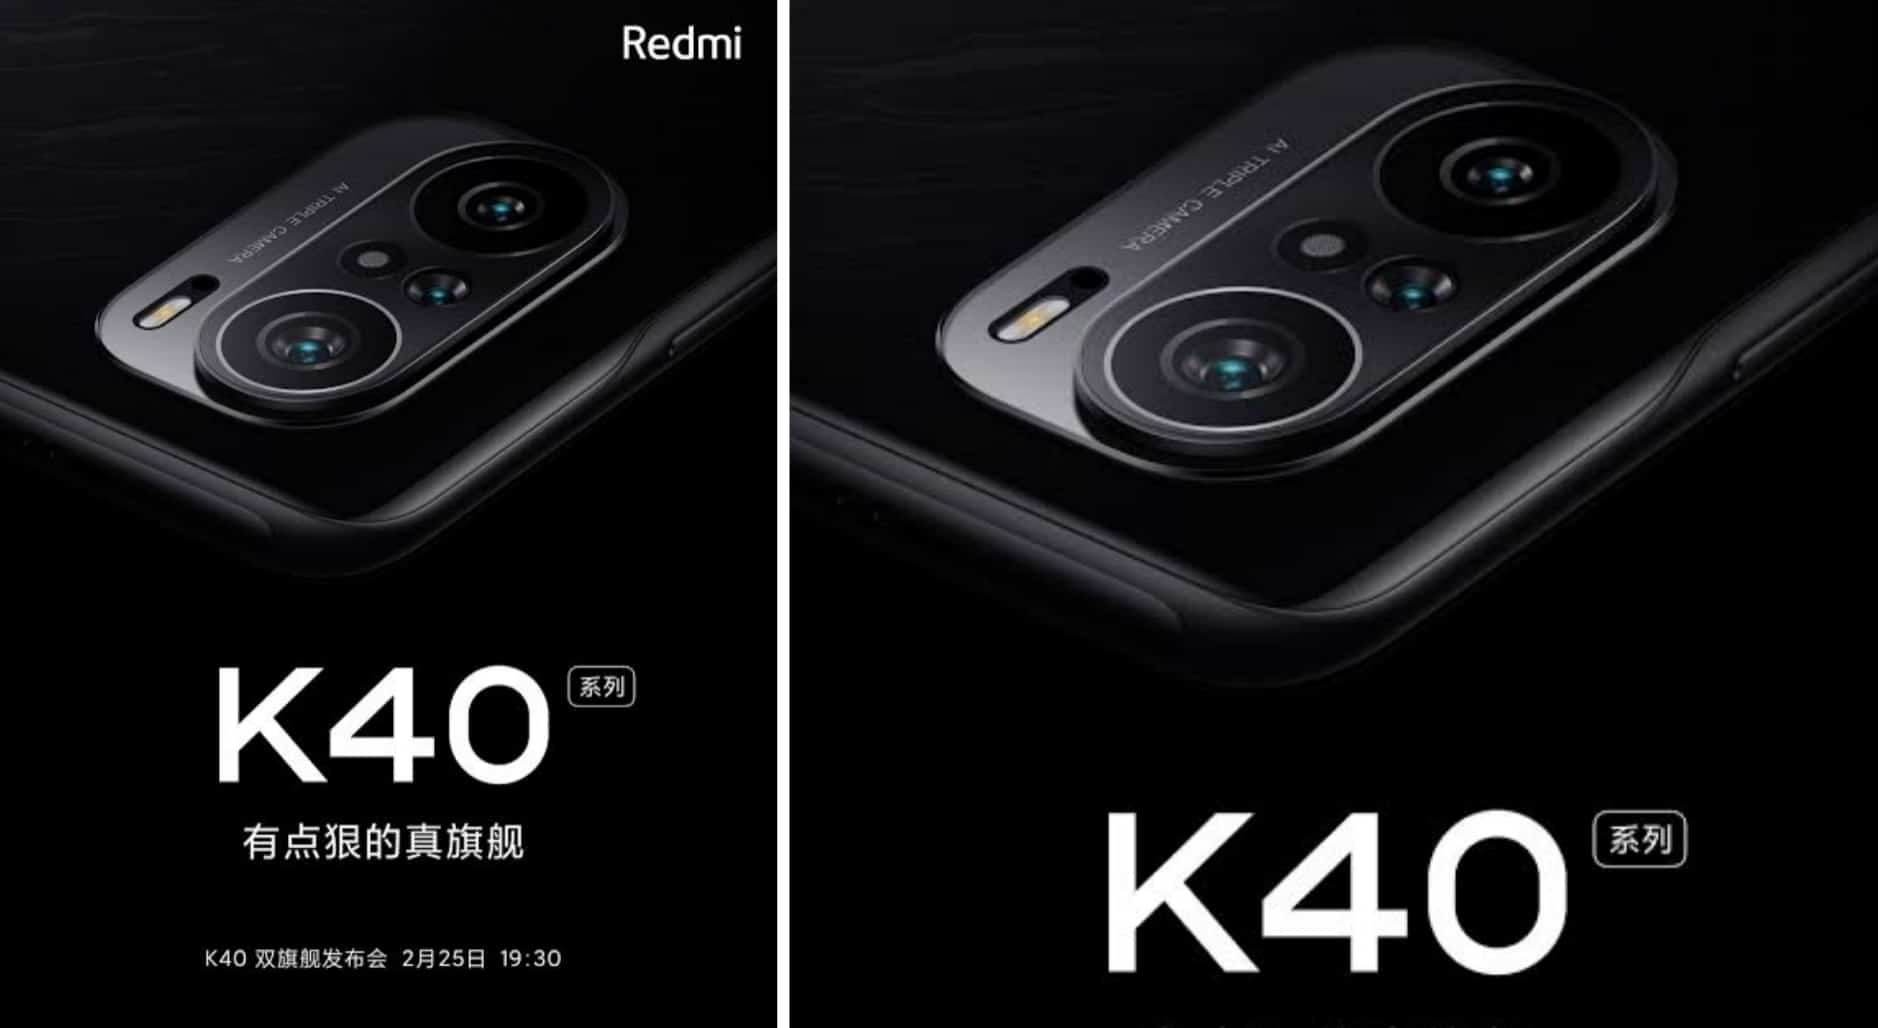 Redmi K40 Spotted on Geekbench Ahead of February 25th Launch: Key Specifications Leaked